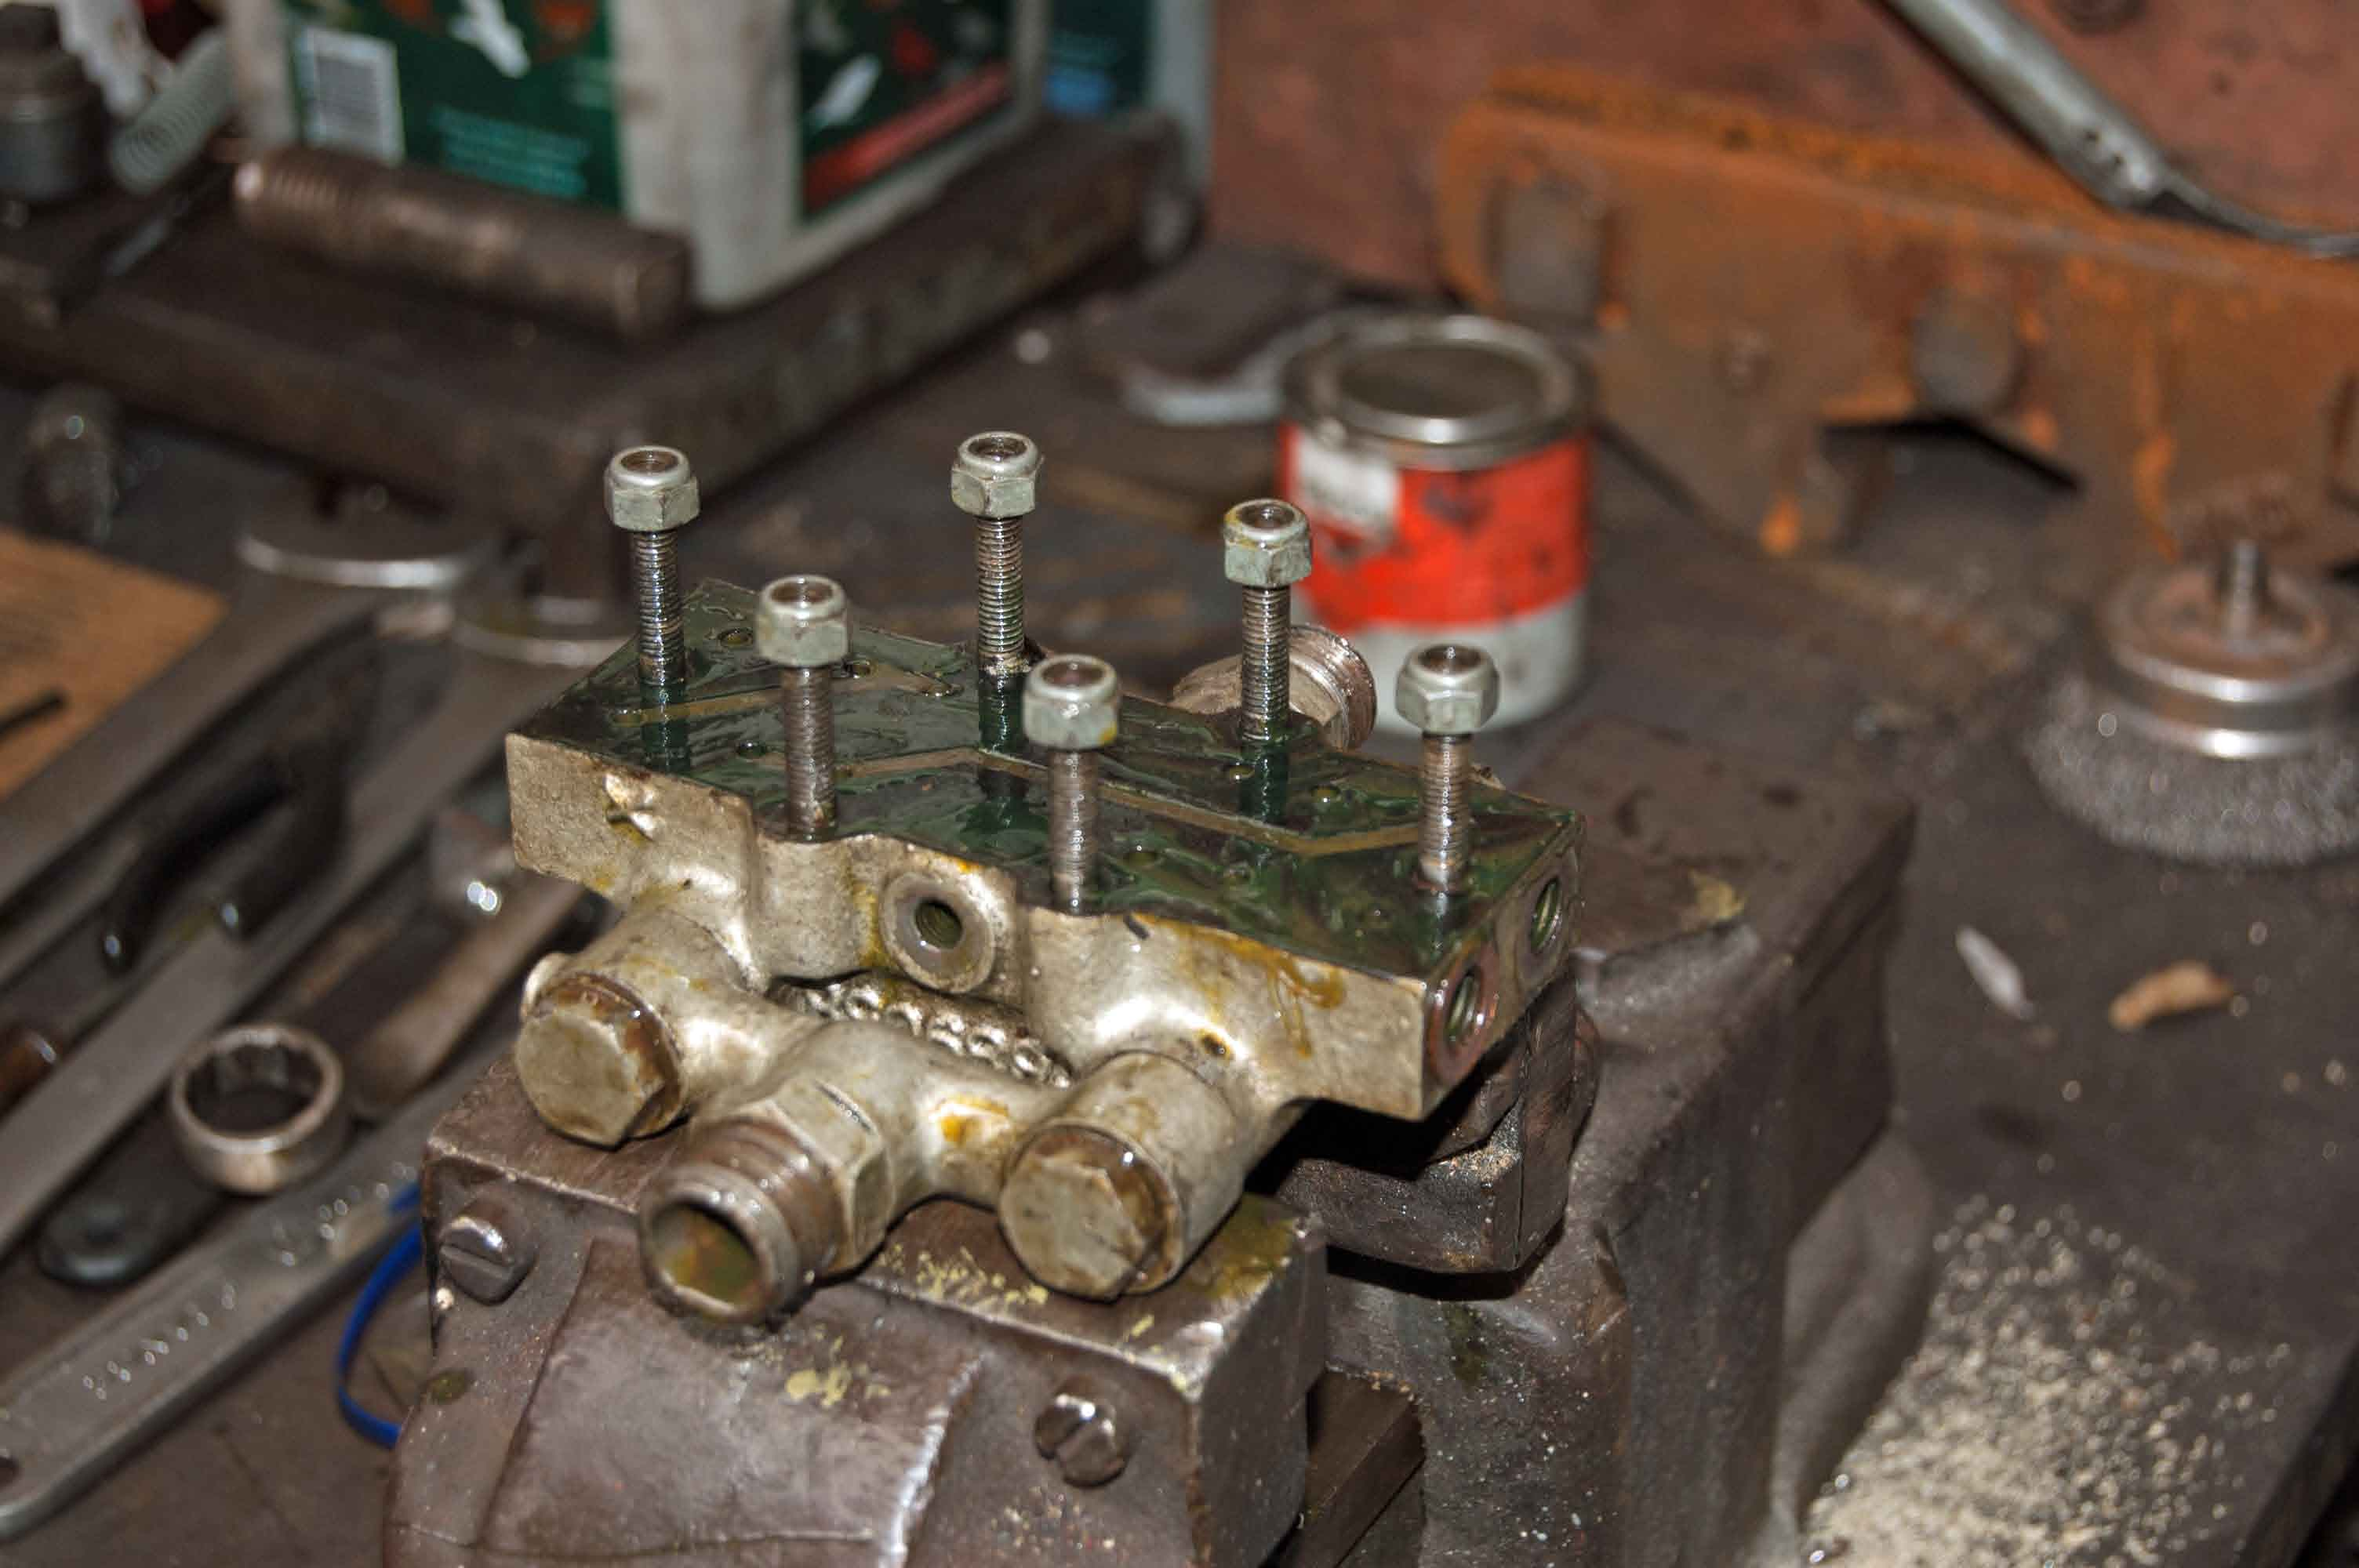 Overhauling smaller parts of the lubrication system